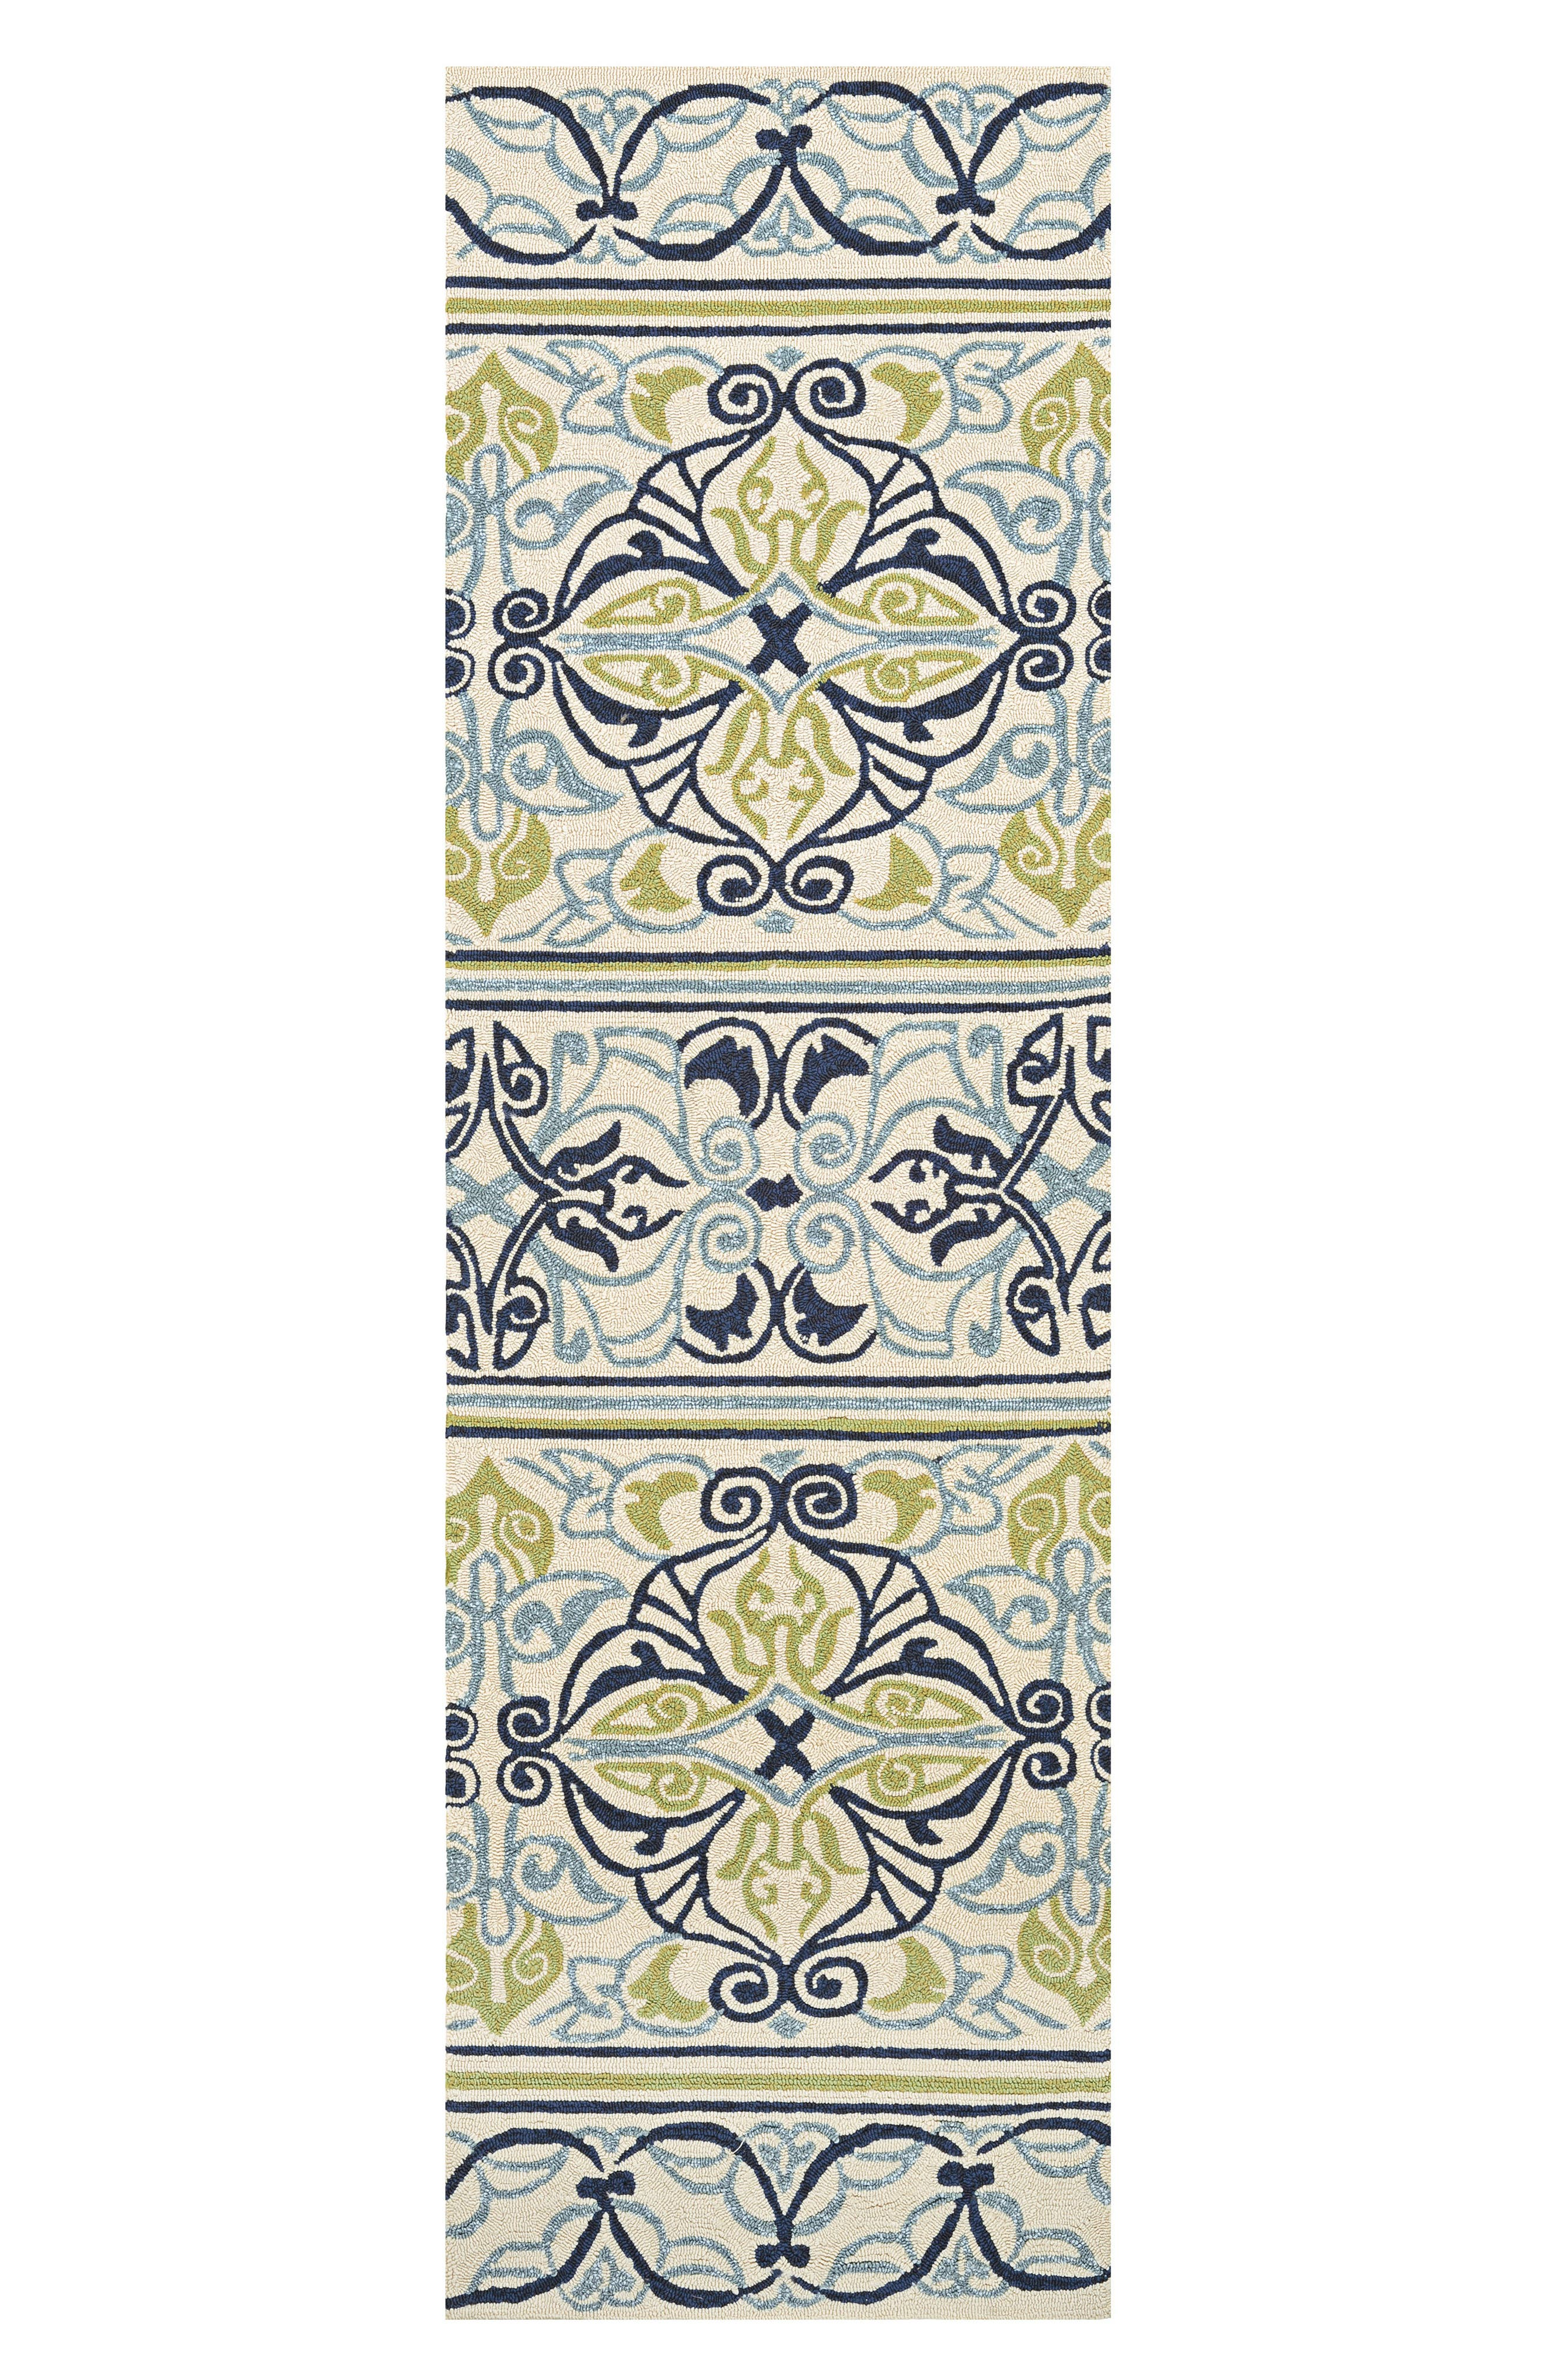 Pegasus Indoor/Outdoor Rug,                             Alternate thumbnail 3, color,                             IVORY/ NAVY/ LIME